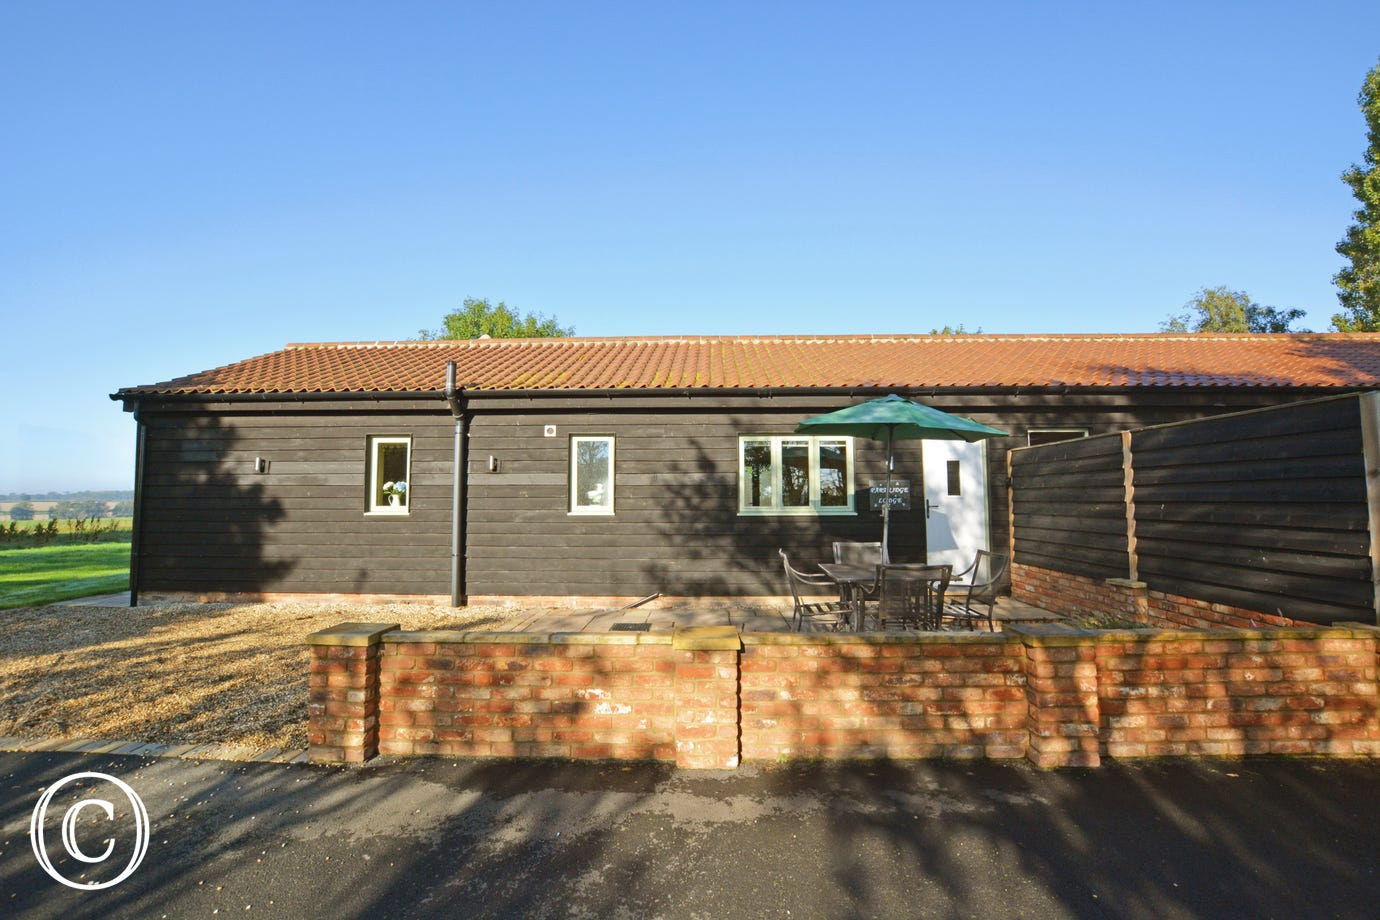 Exterior image of this lovely single storey lodge